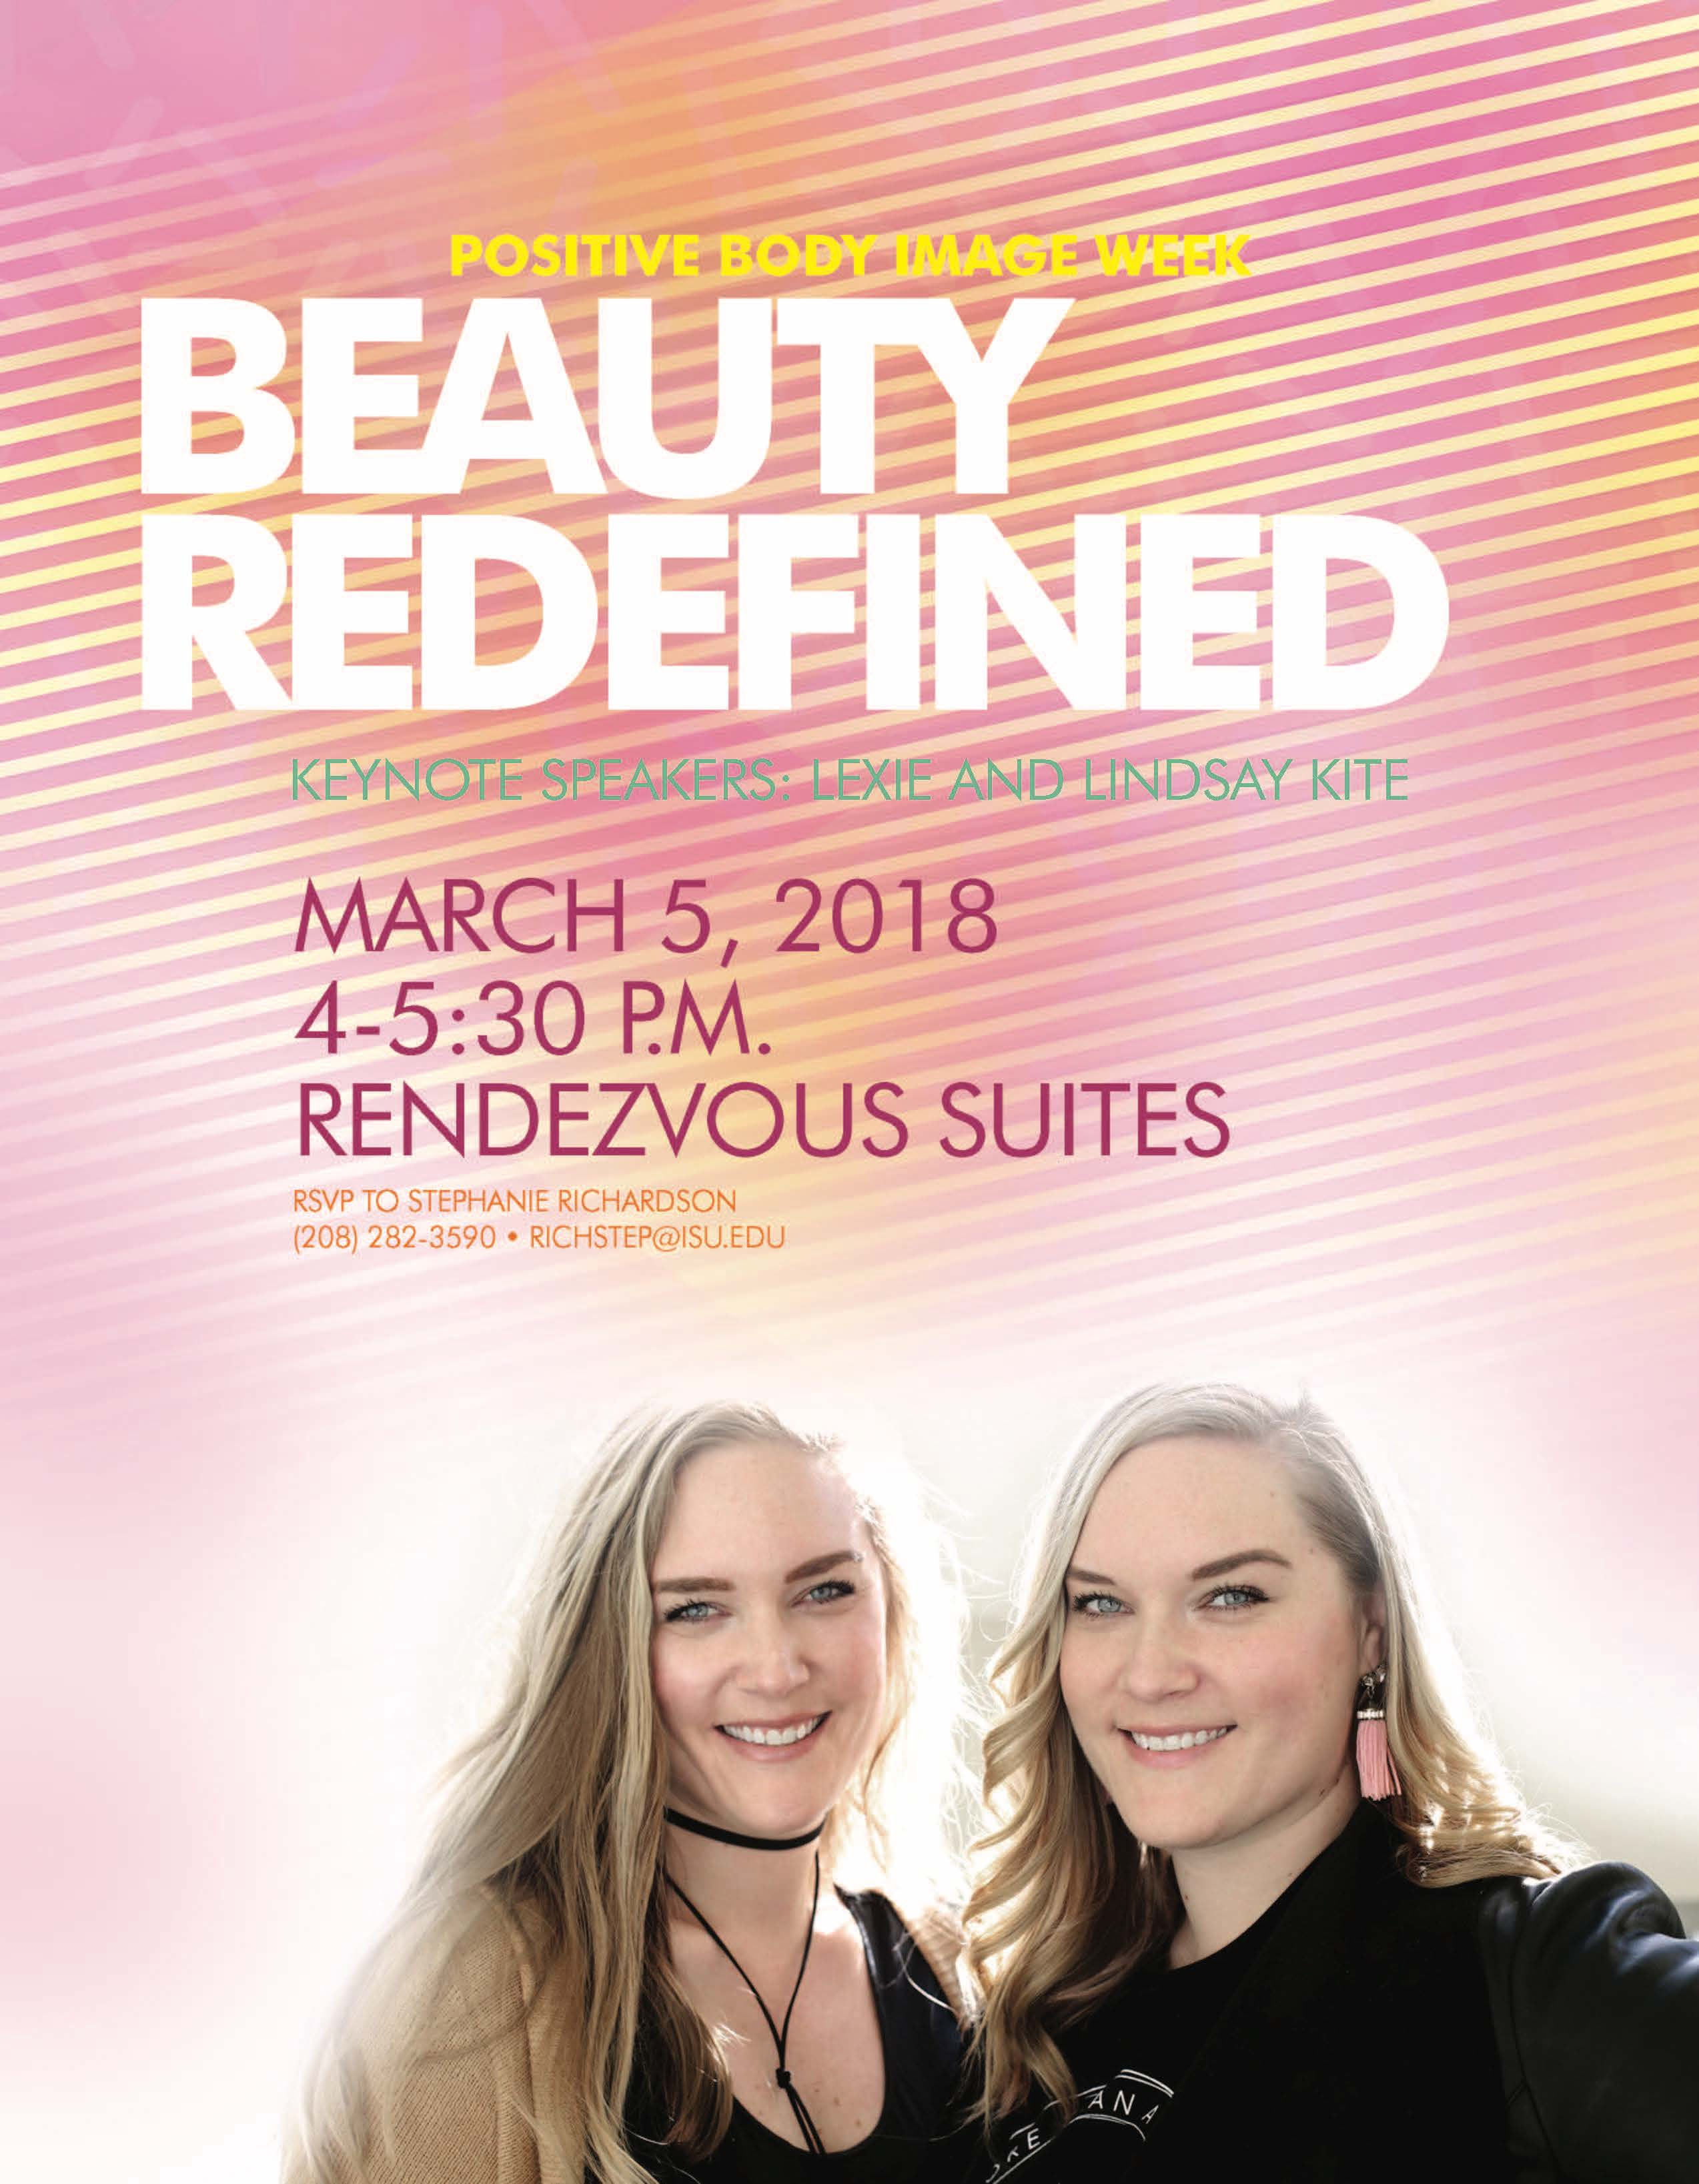 ISU Positive Body Image Symposium features presentation by founders of Beauty Redefined